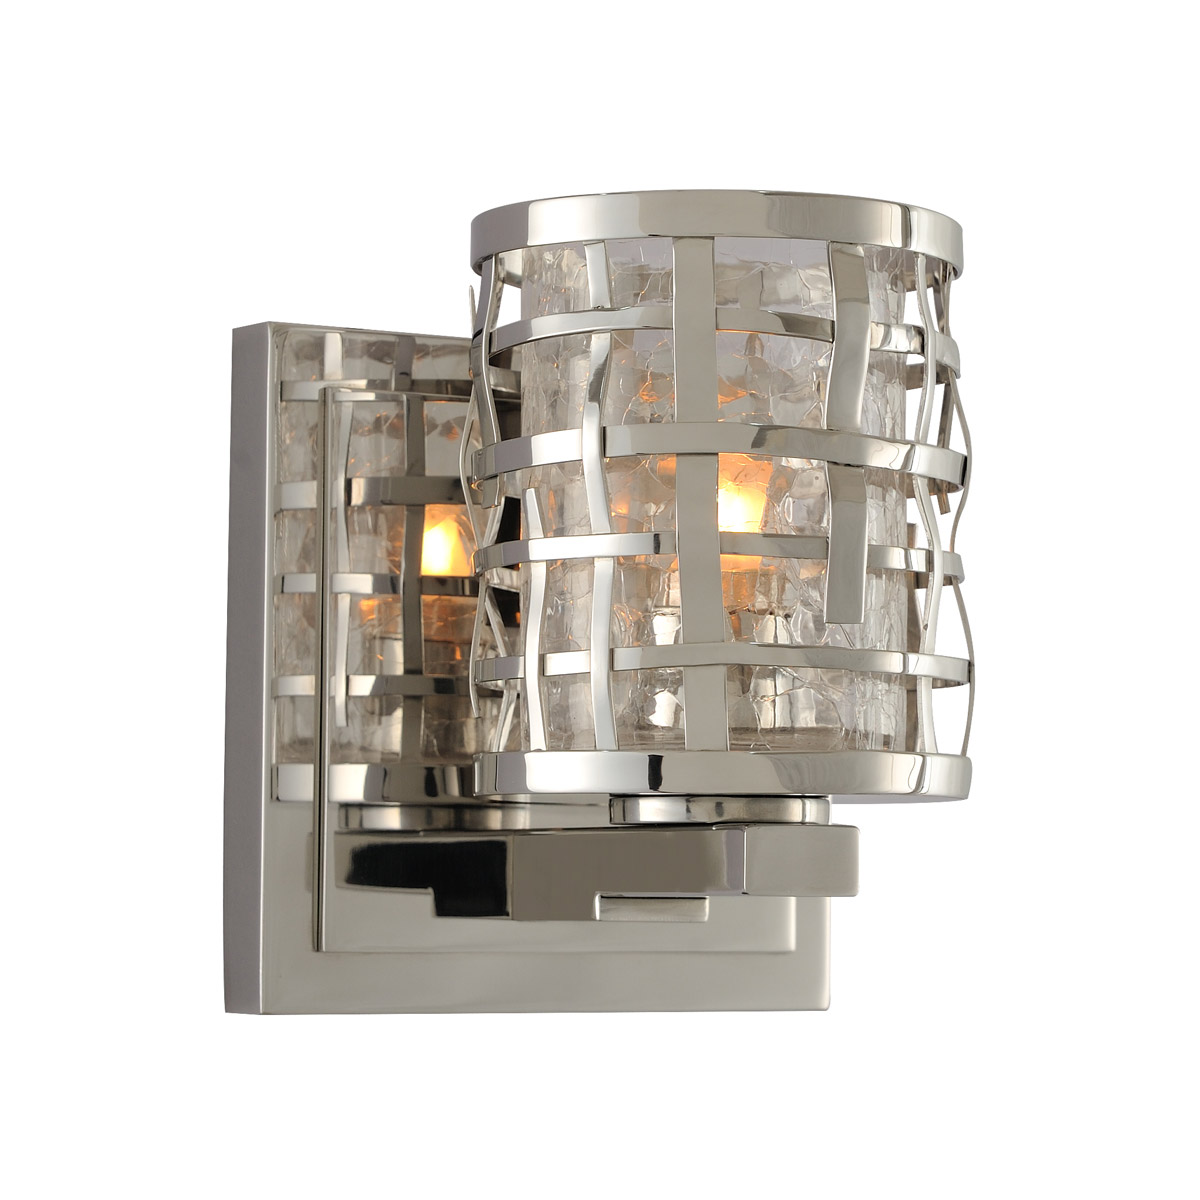 Rl 339256 Bath Lighting Stainless Steel